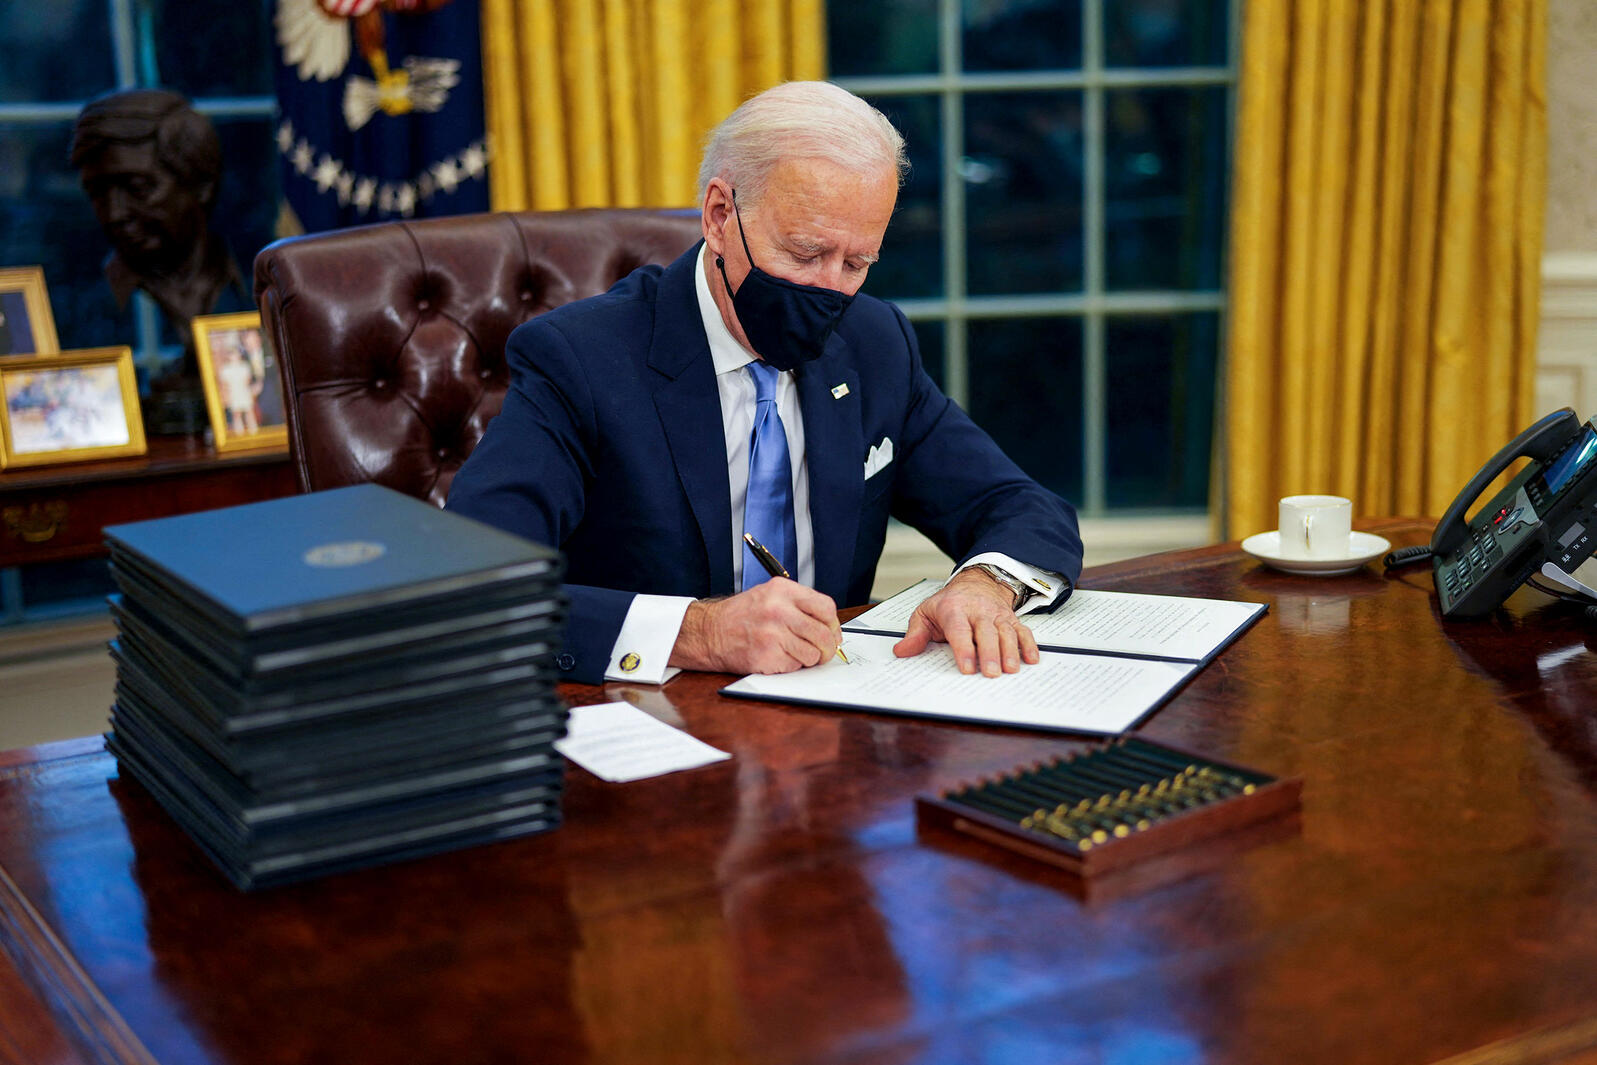 President Joe Biden signs executive orders during his first minutes in the Oval Office, January 20th, 2021. Doug Mills/The New York Times/Alamy